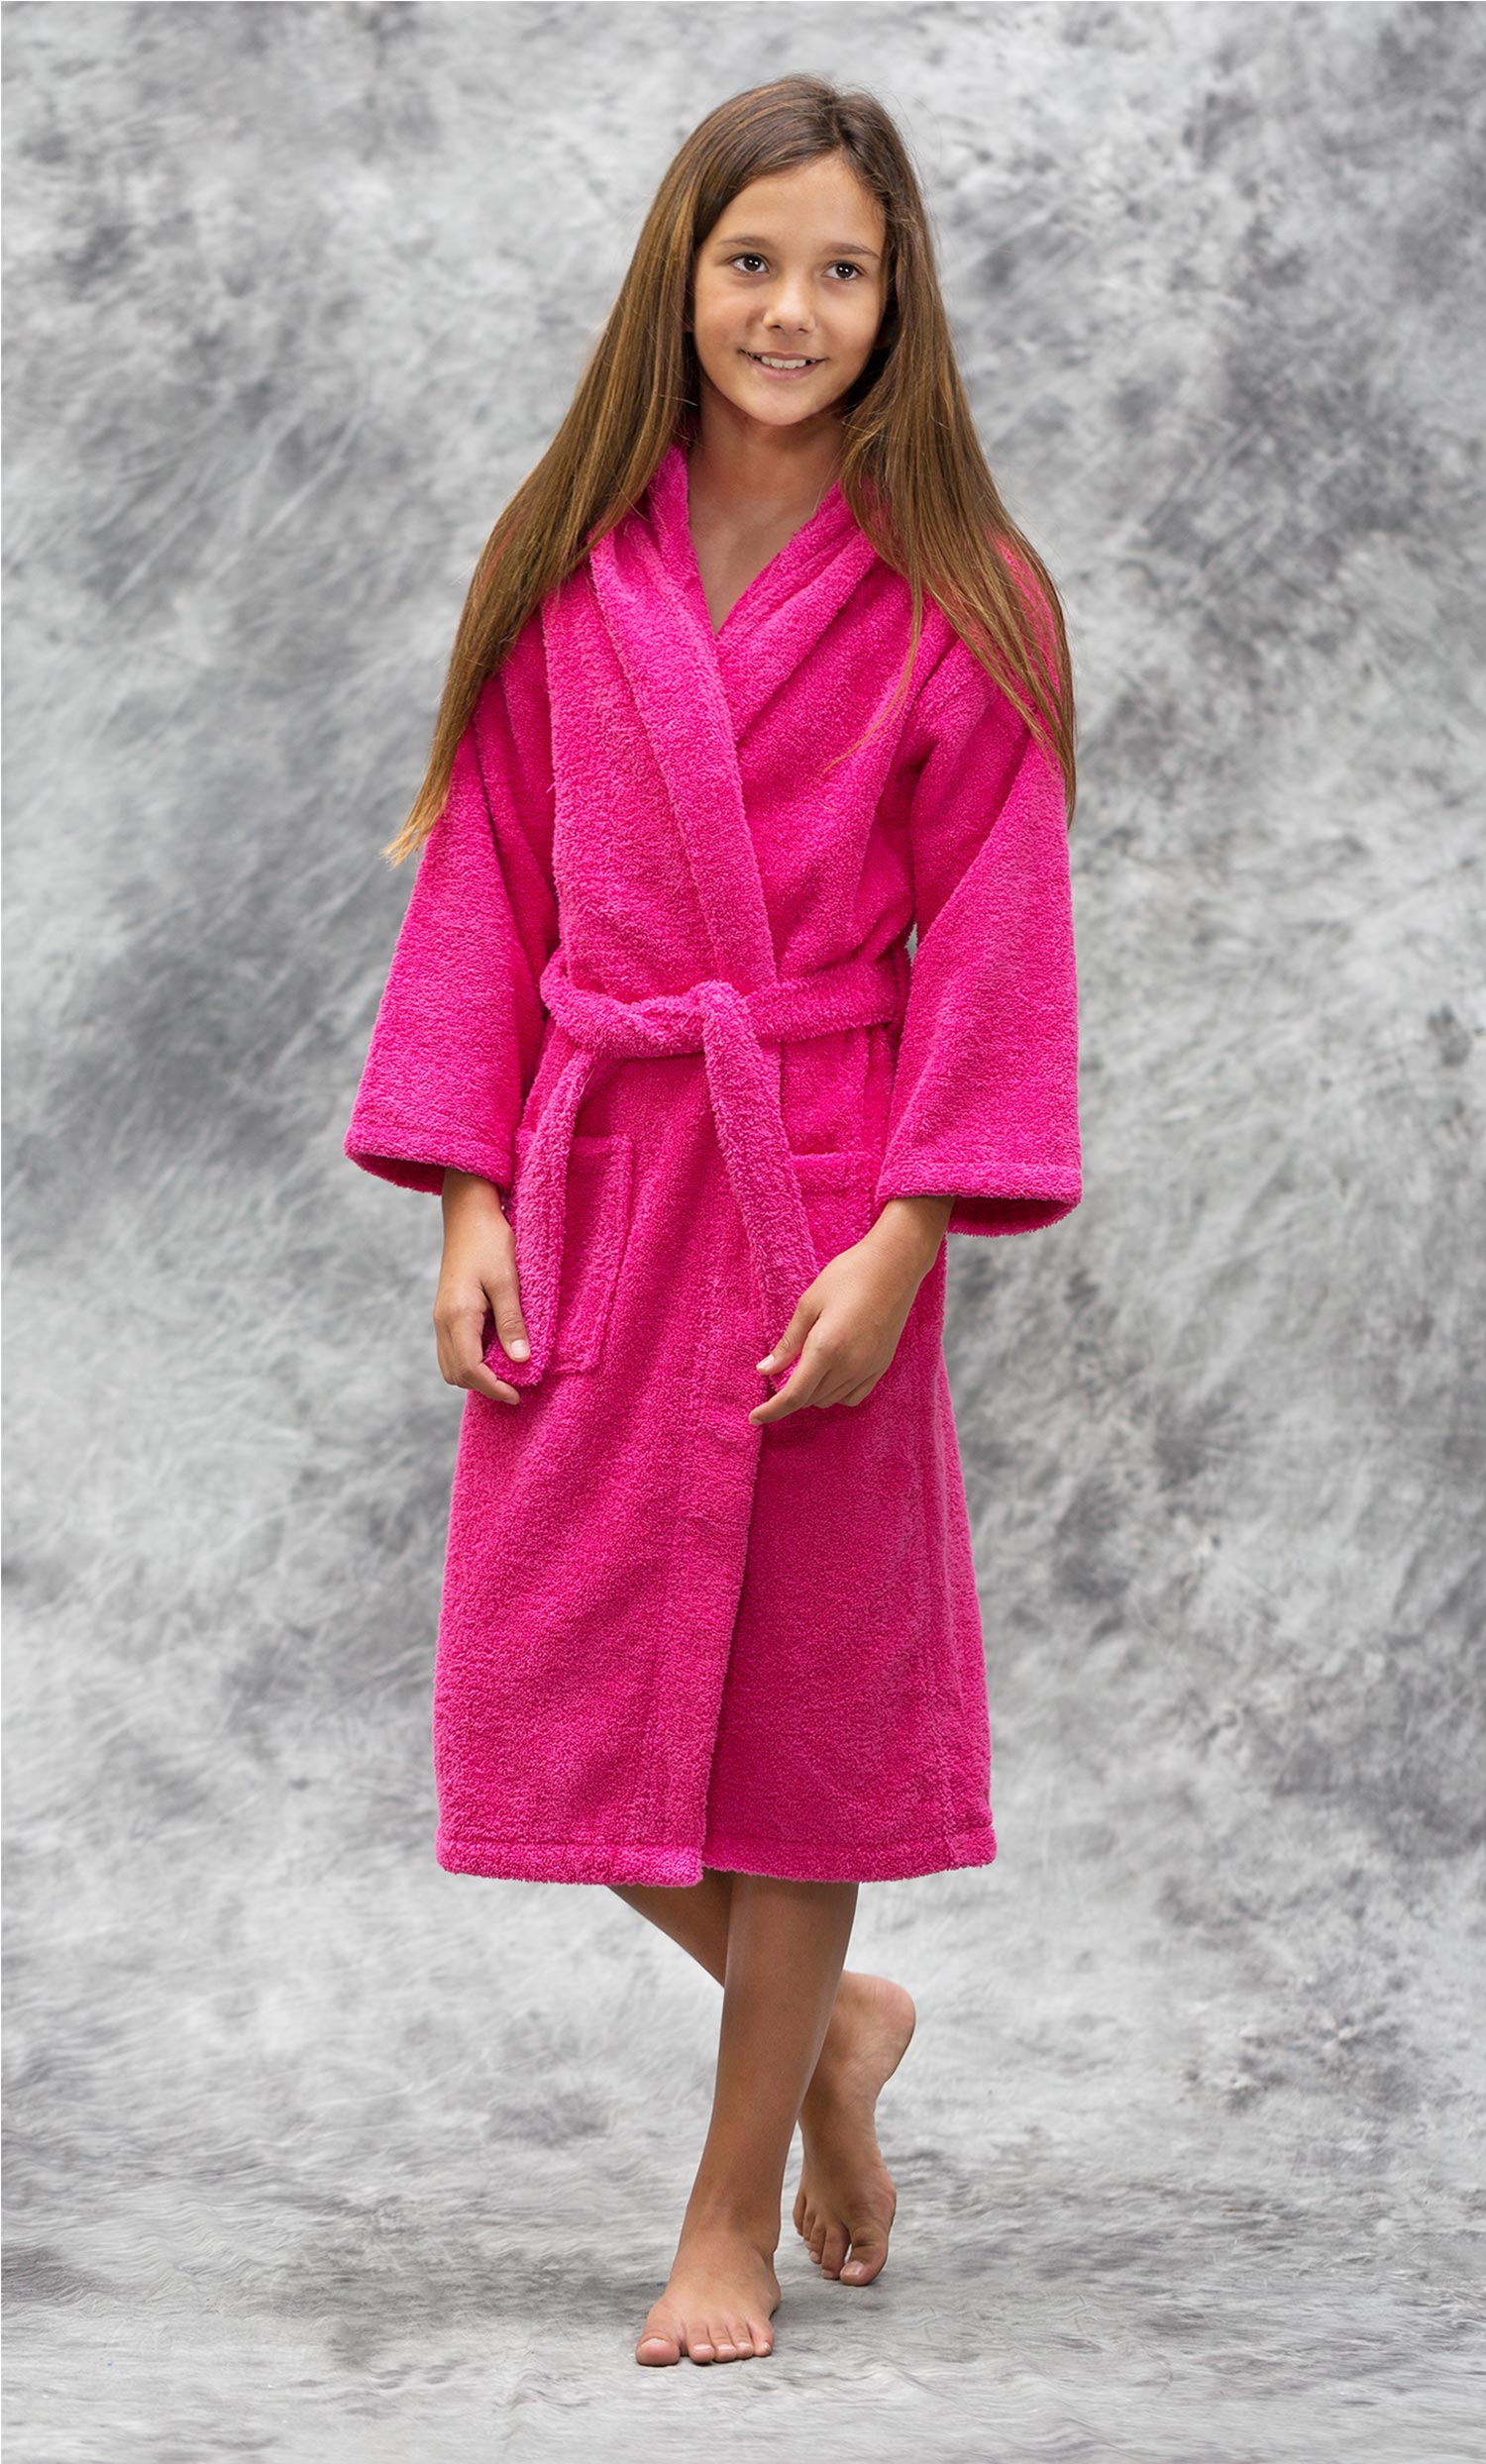 6a99a55dff Kids Bathrobes    Terry Kids Hooded Bathrobes    100% Turkish Cotton  Fuchsia Hooded Terry Kid s Bathrobe - Wholesale bathrobes